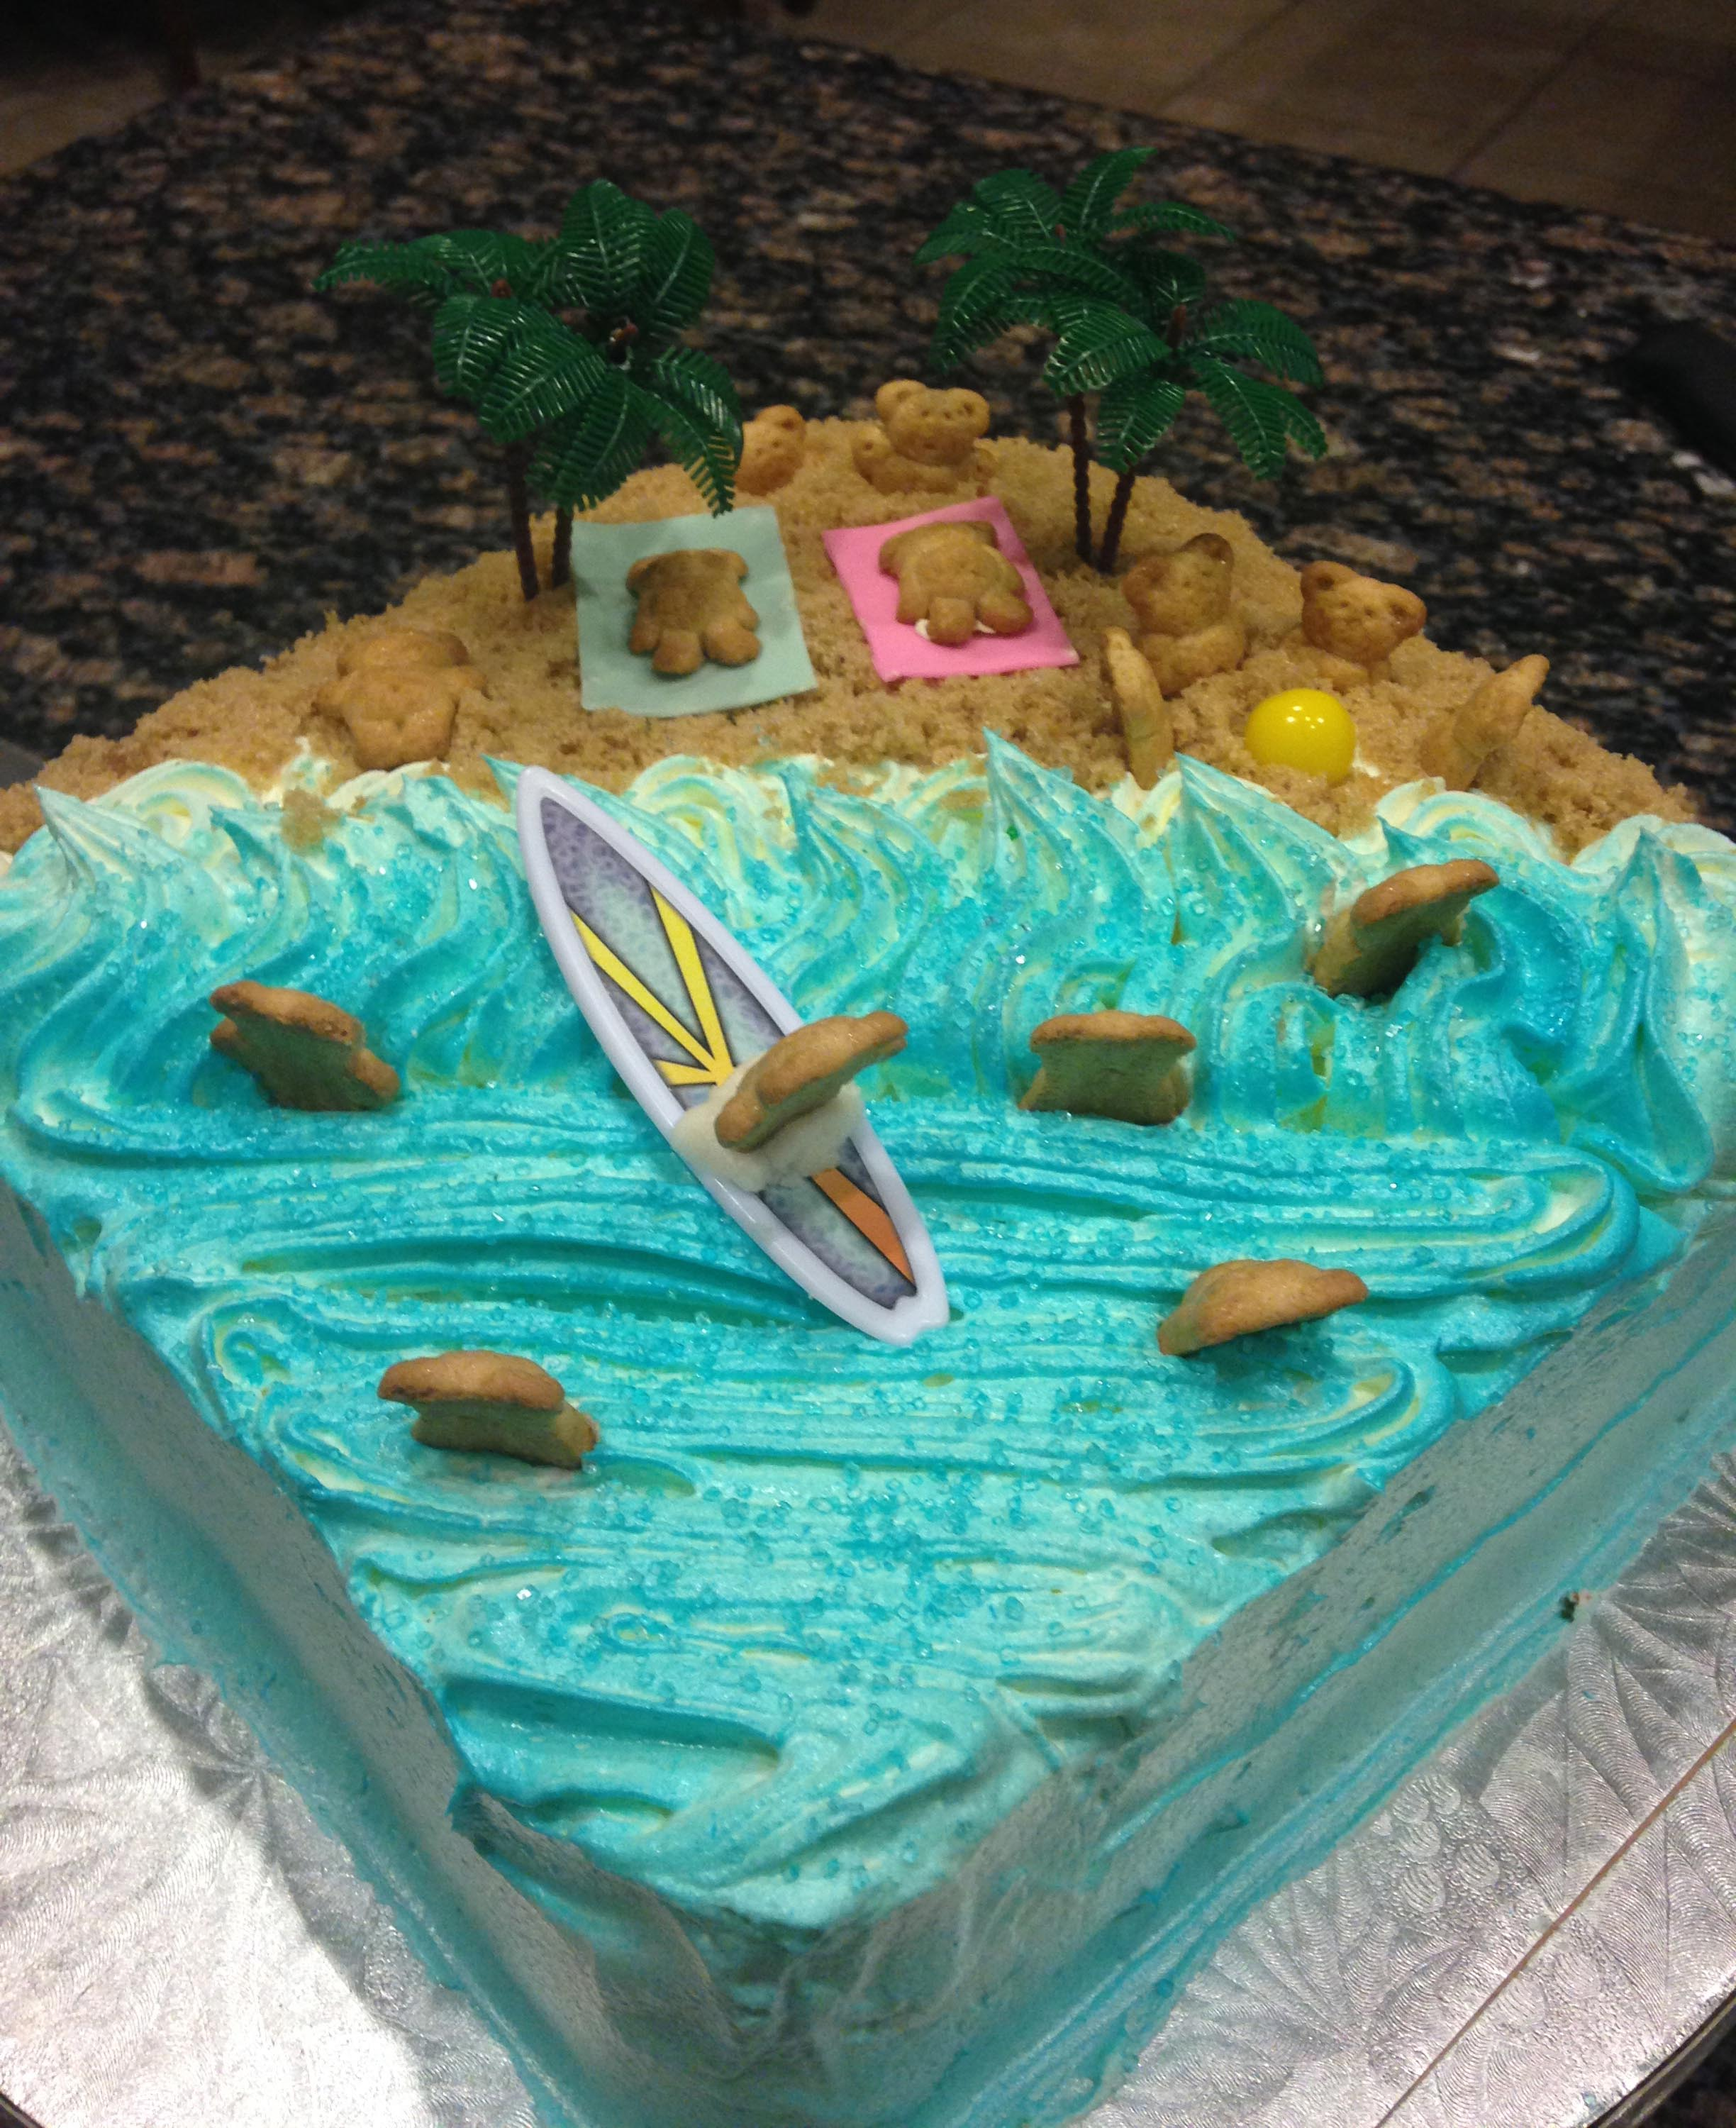 icingsrus-Surfing-Teddy-Graham-Cracker-Cake